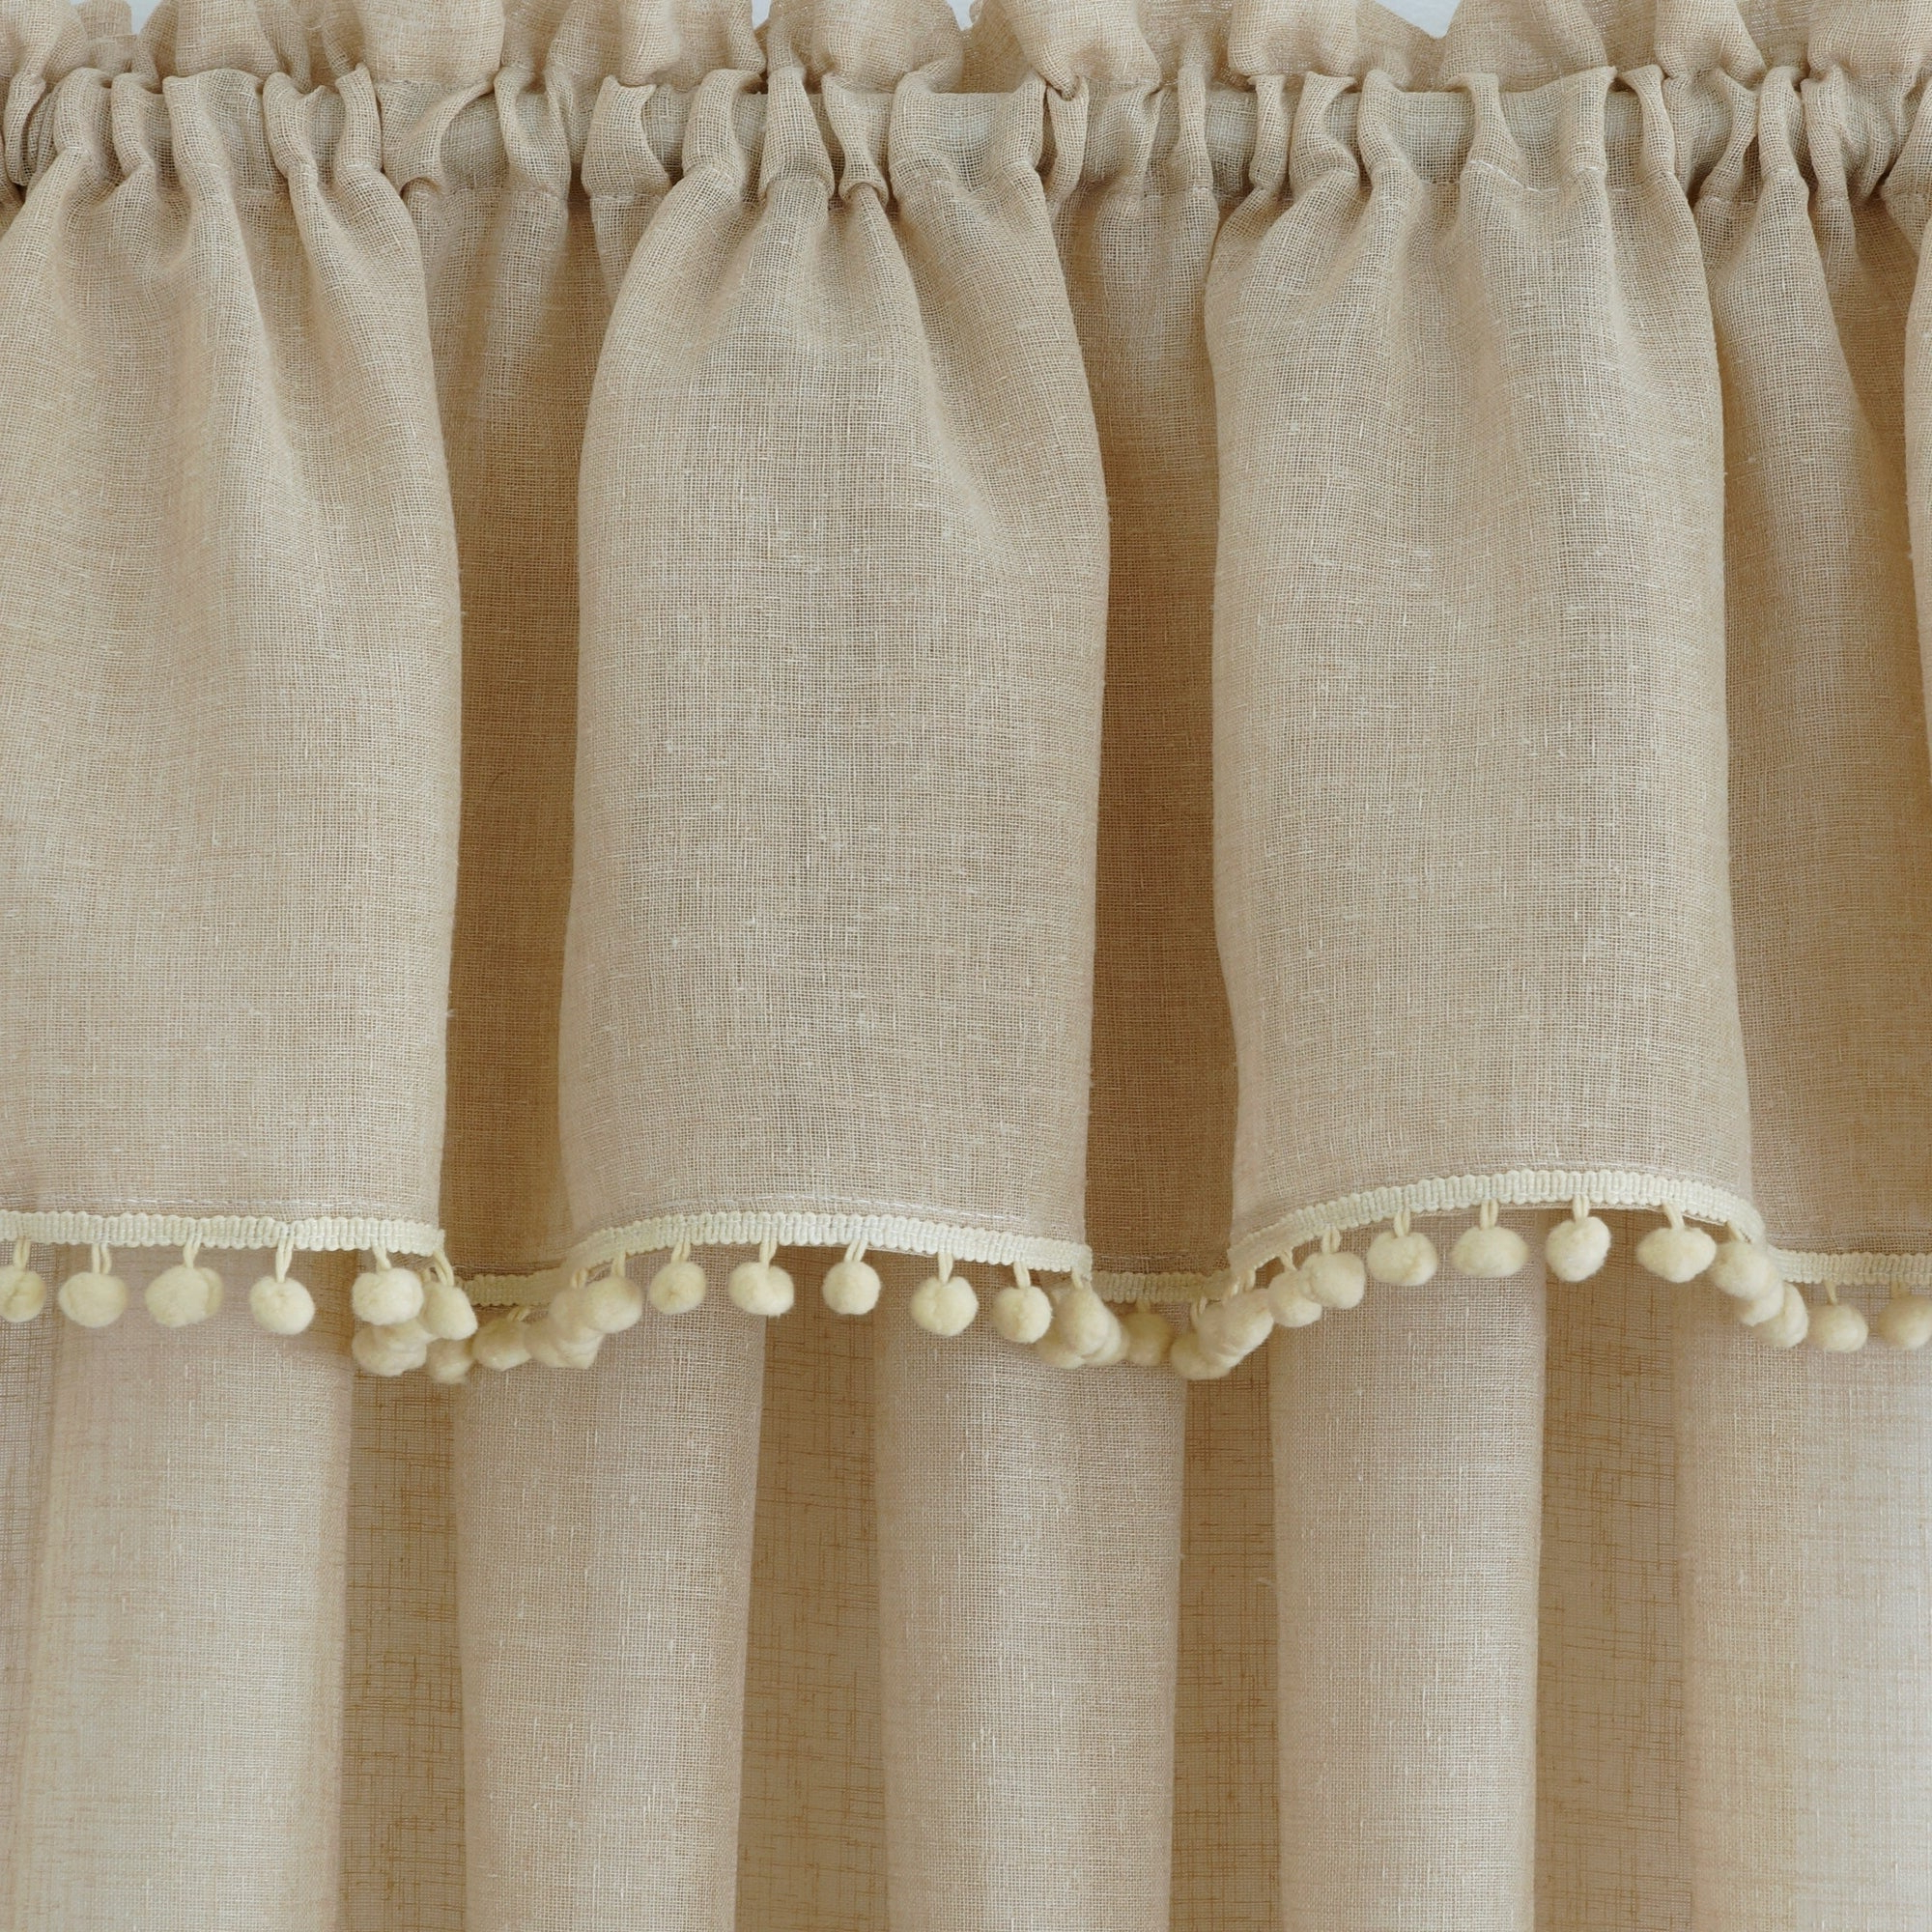 Wallace Window Kitchen Curtain Tiers Pertaining To Well Known Wallace Window Kitchen Curtain Tier Pair And Valance Set (View 4 of 20)